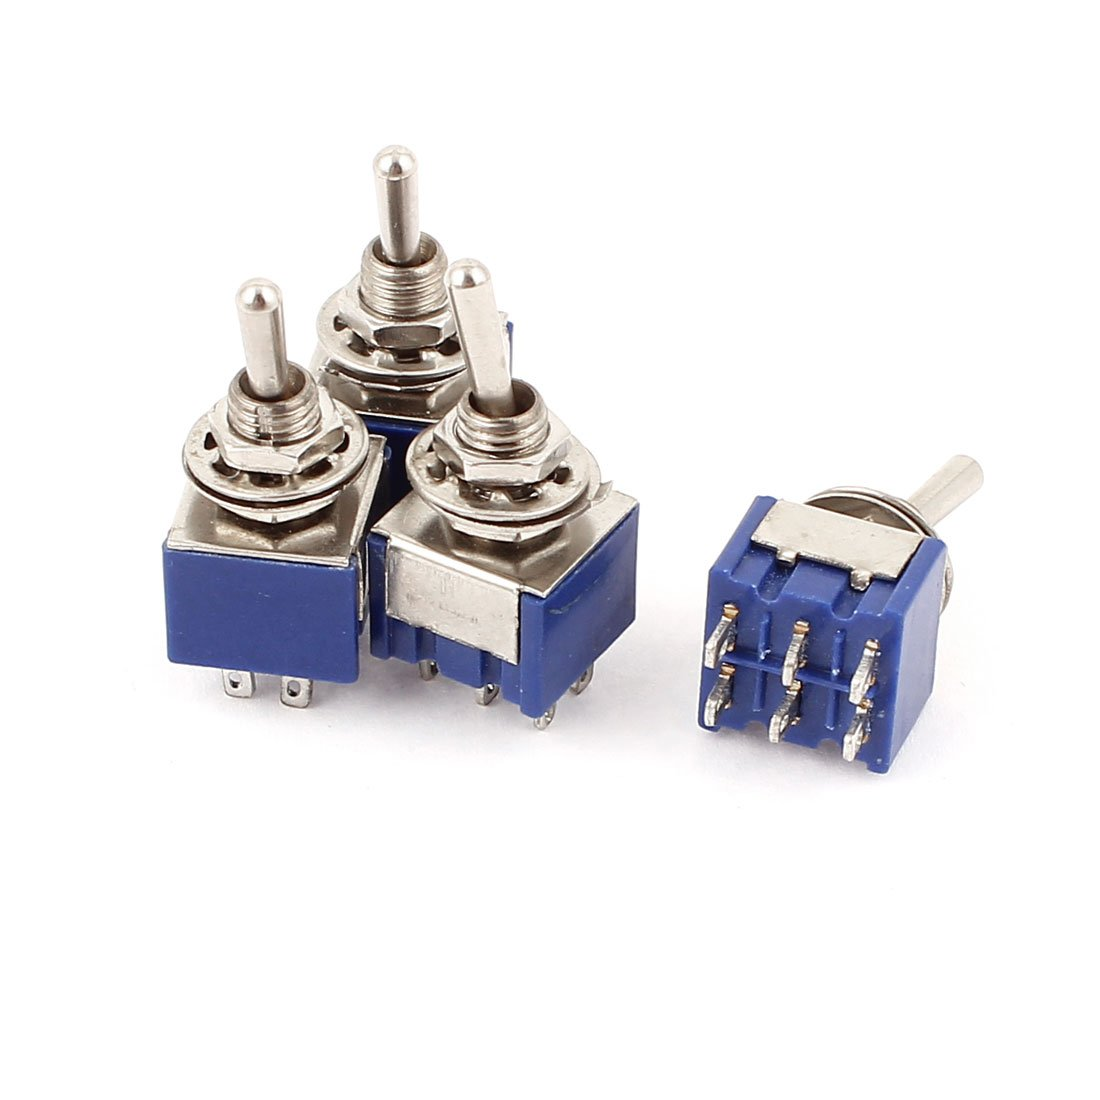 Uxcell a15062200ux0651 2 Position 6Pins DPDT ON-OFF Micro Mini Toggle Switch, AC 6 Amp, 125V, 4 Piece